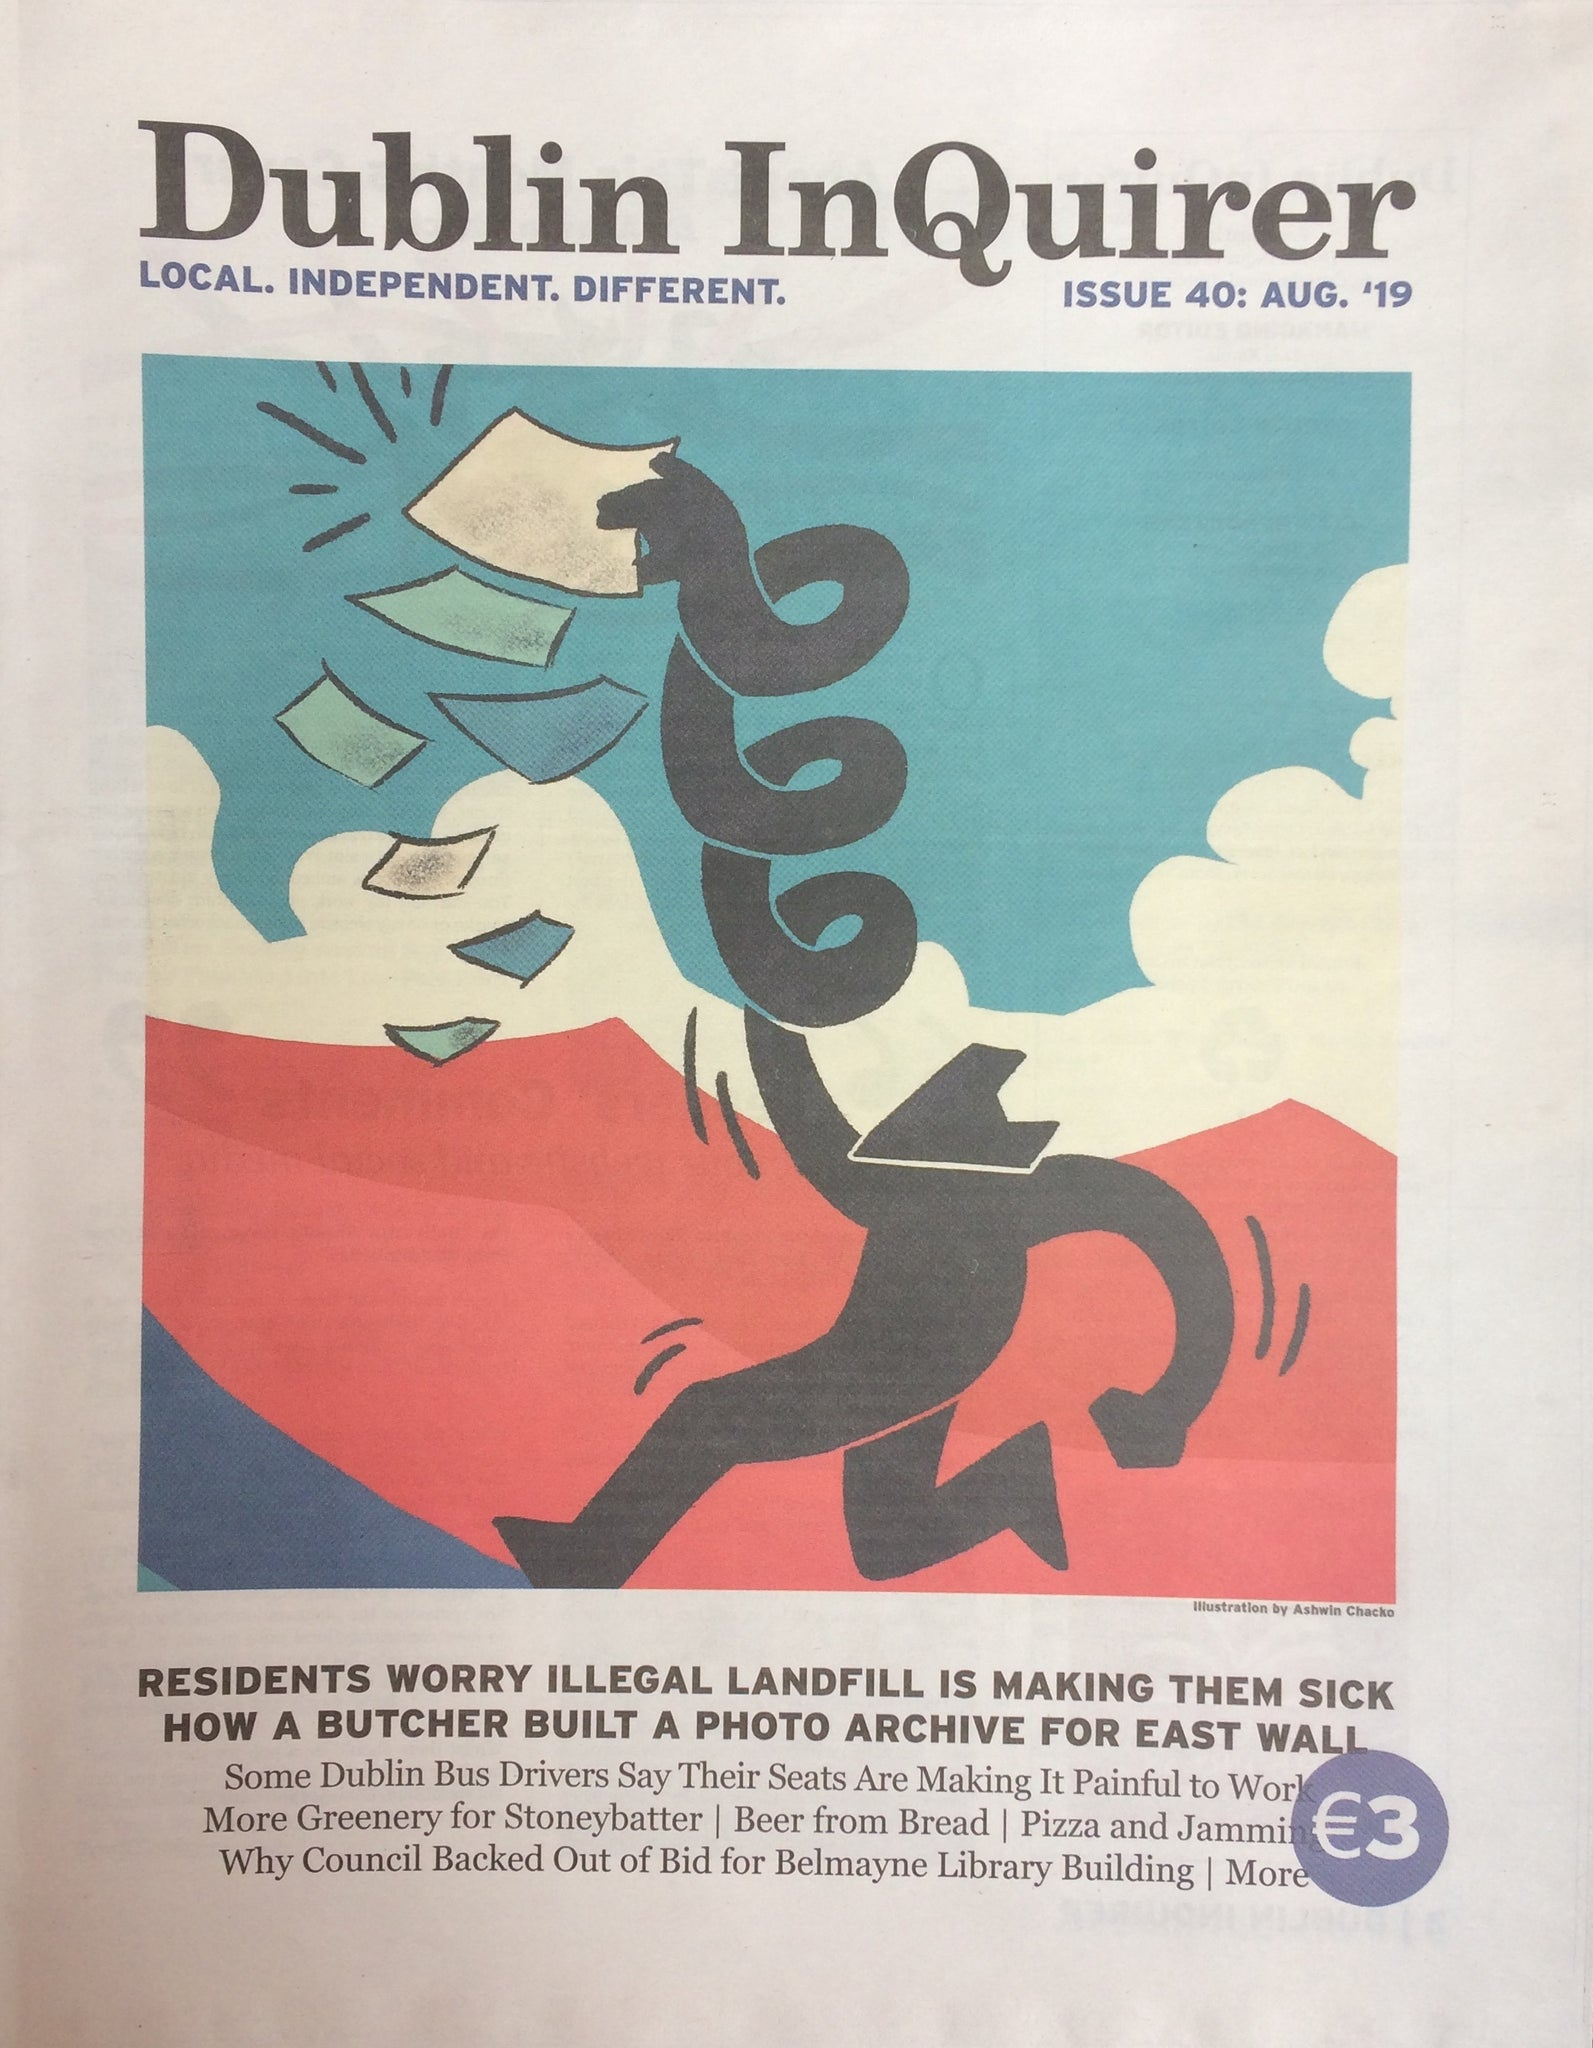 Dublin InQuirer Issue 40 - The Library Project